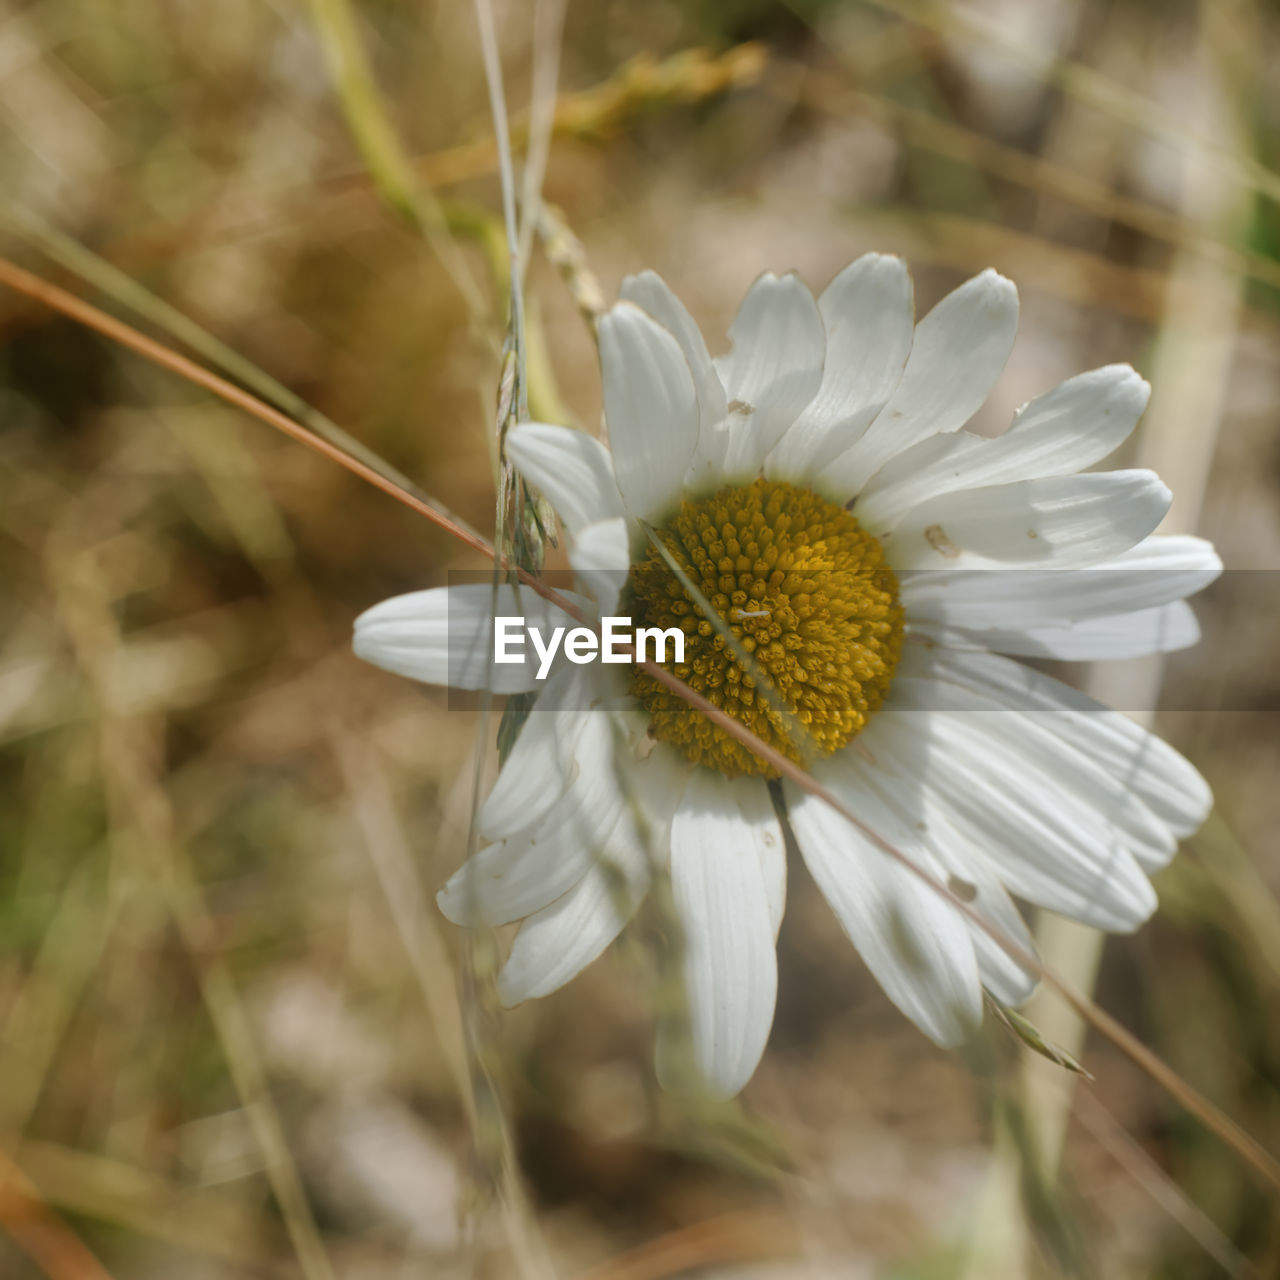 flowering plant, flower, fragility, vulnerability, plant, freshness, beauty in nature, growth, flower head, close-up, inflorescence, petal, white color, focus on foreground, no people, pollen, nature, day, selective focus, softness, dandelion seed